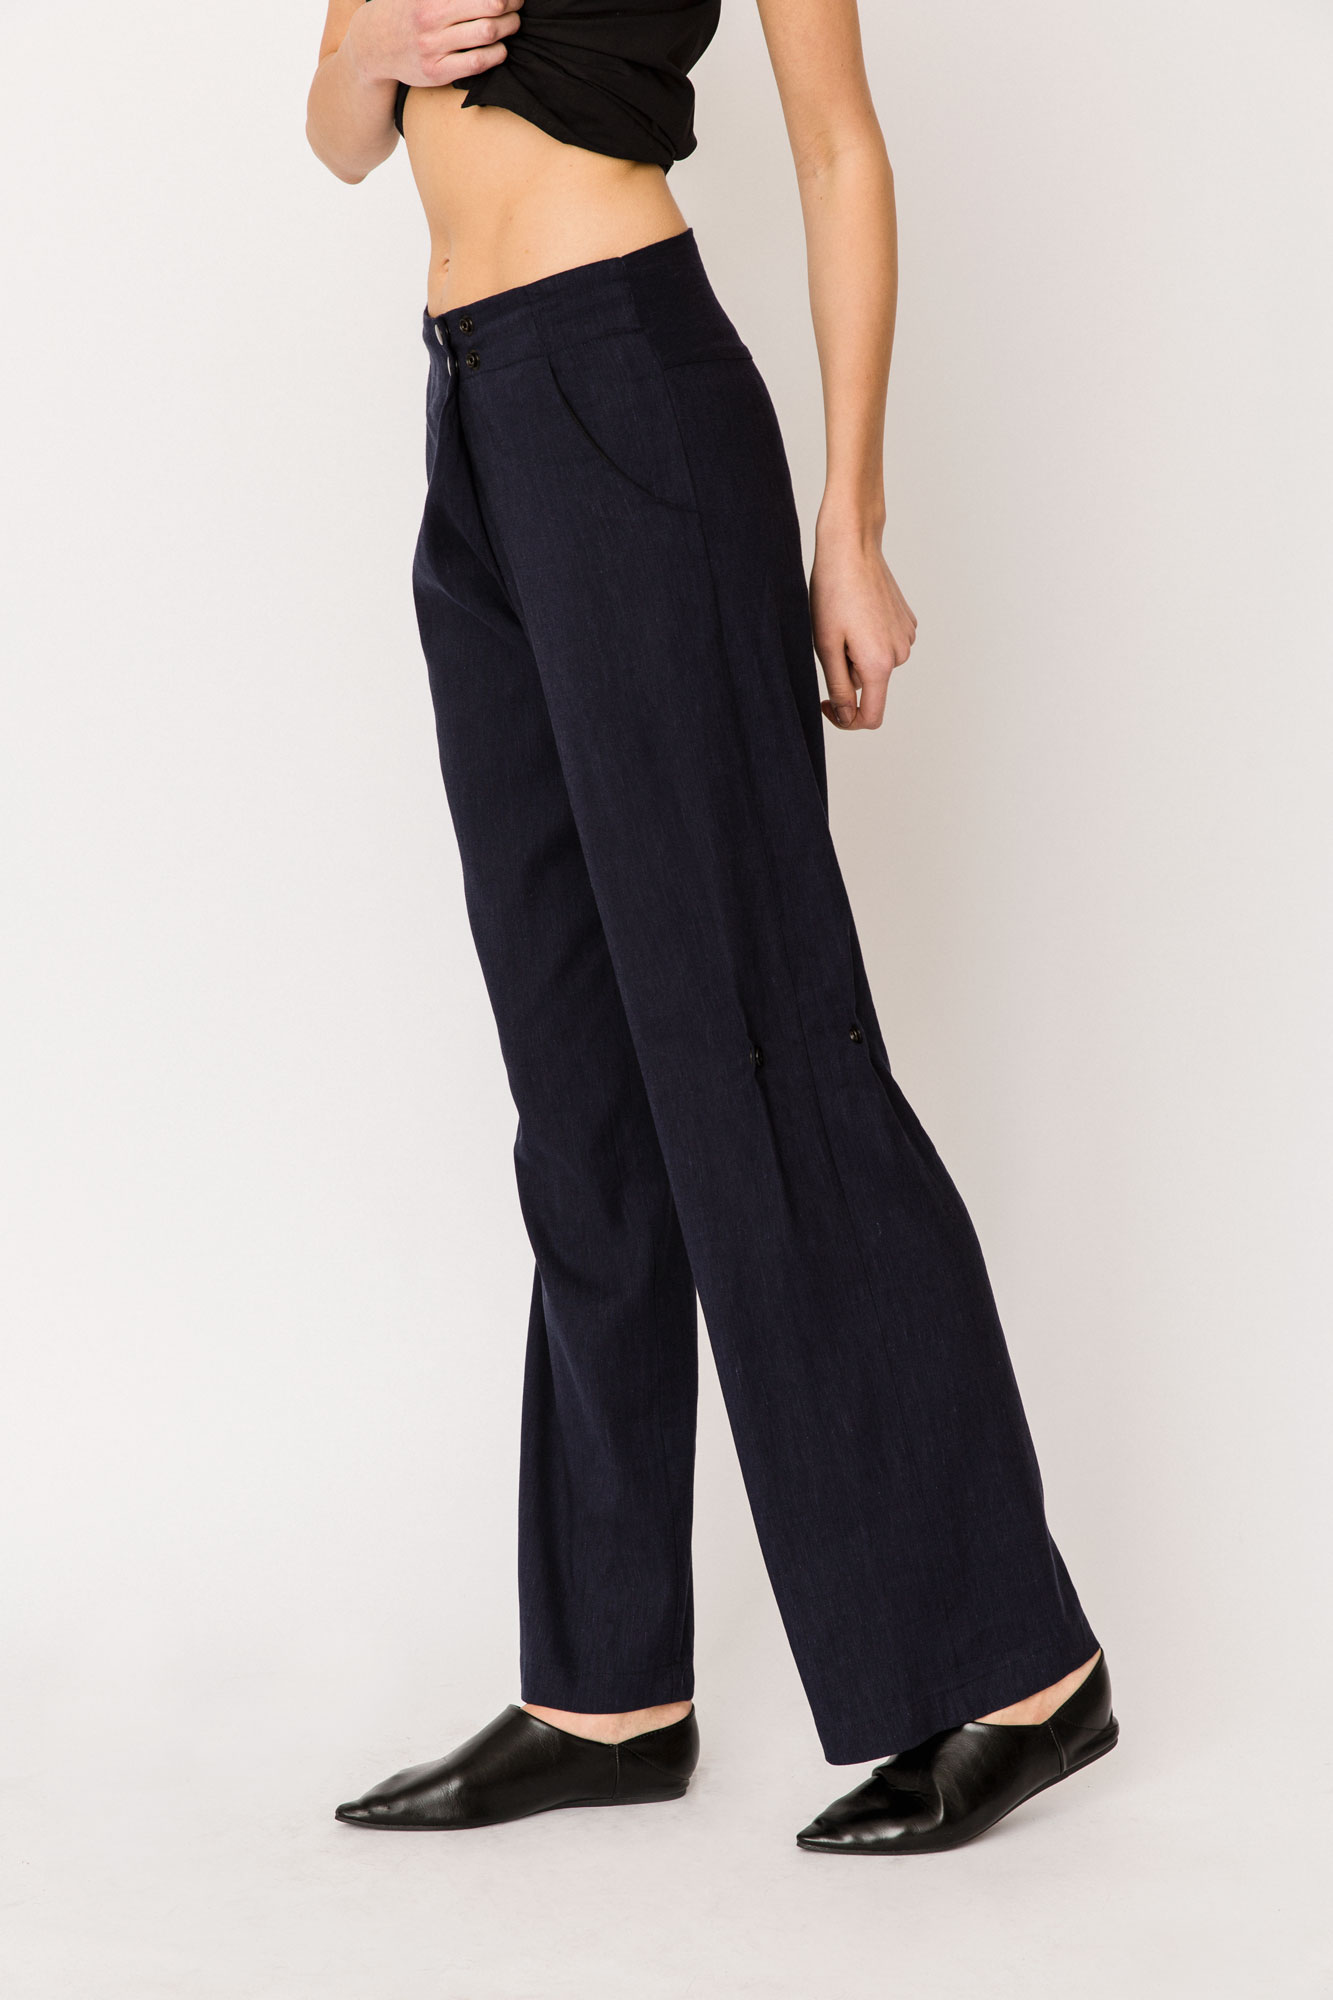 S18-11Agape_Trousers3